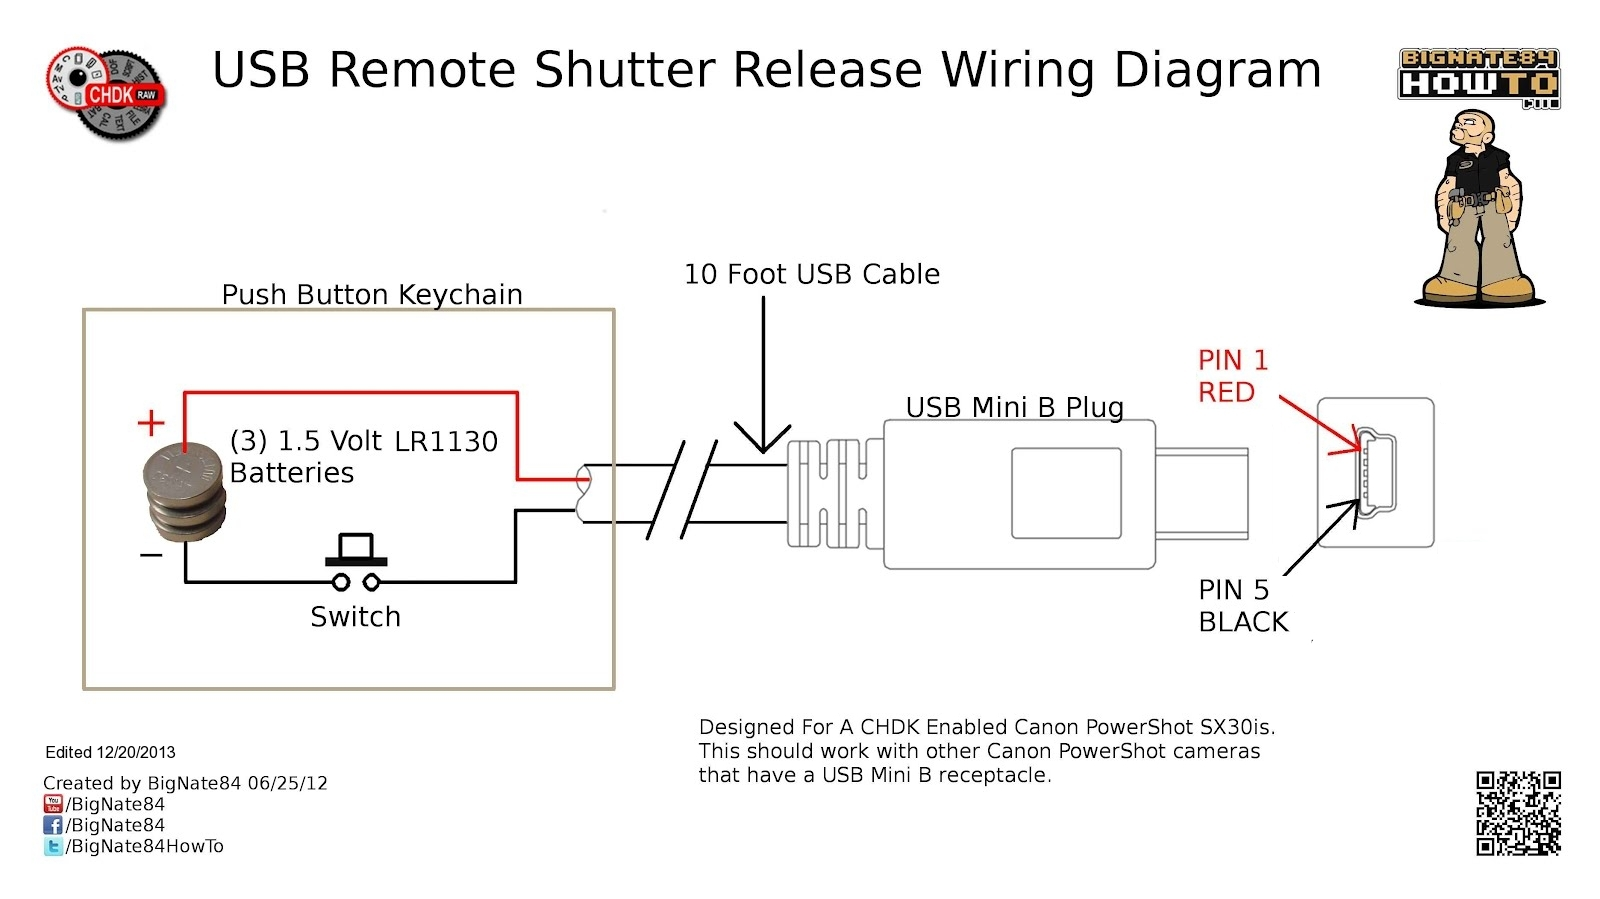 0001 USB Remote Shutter Wiring Diagram -2.jpeg